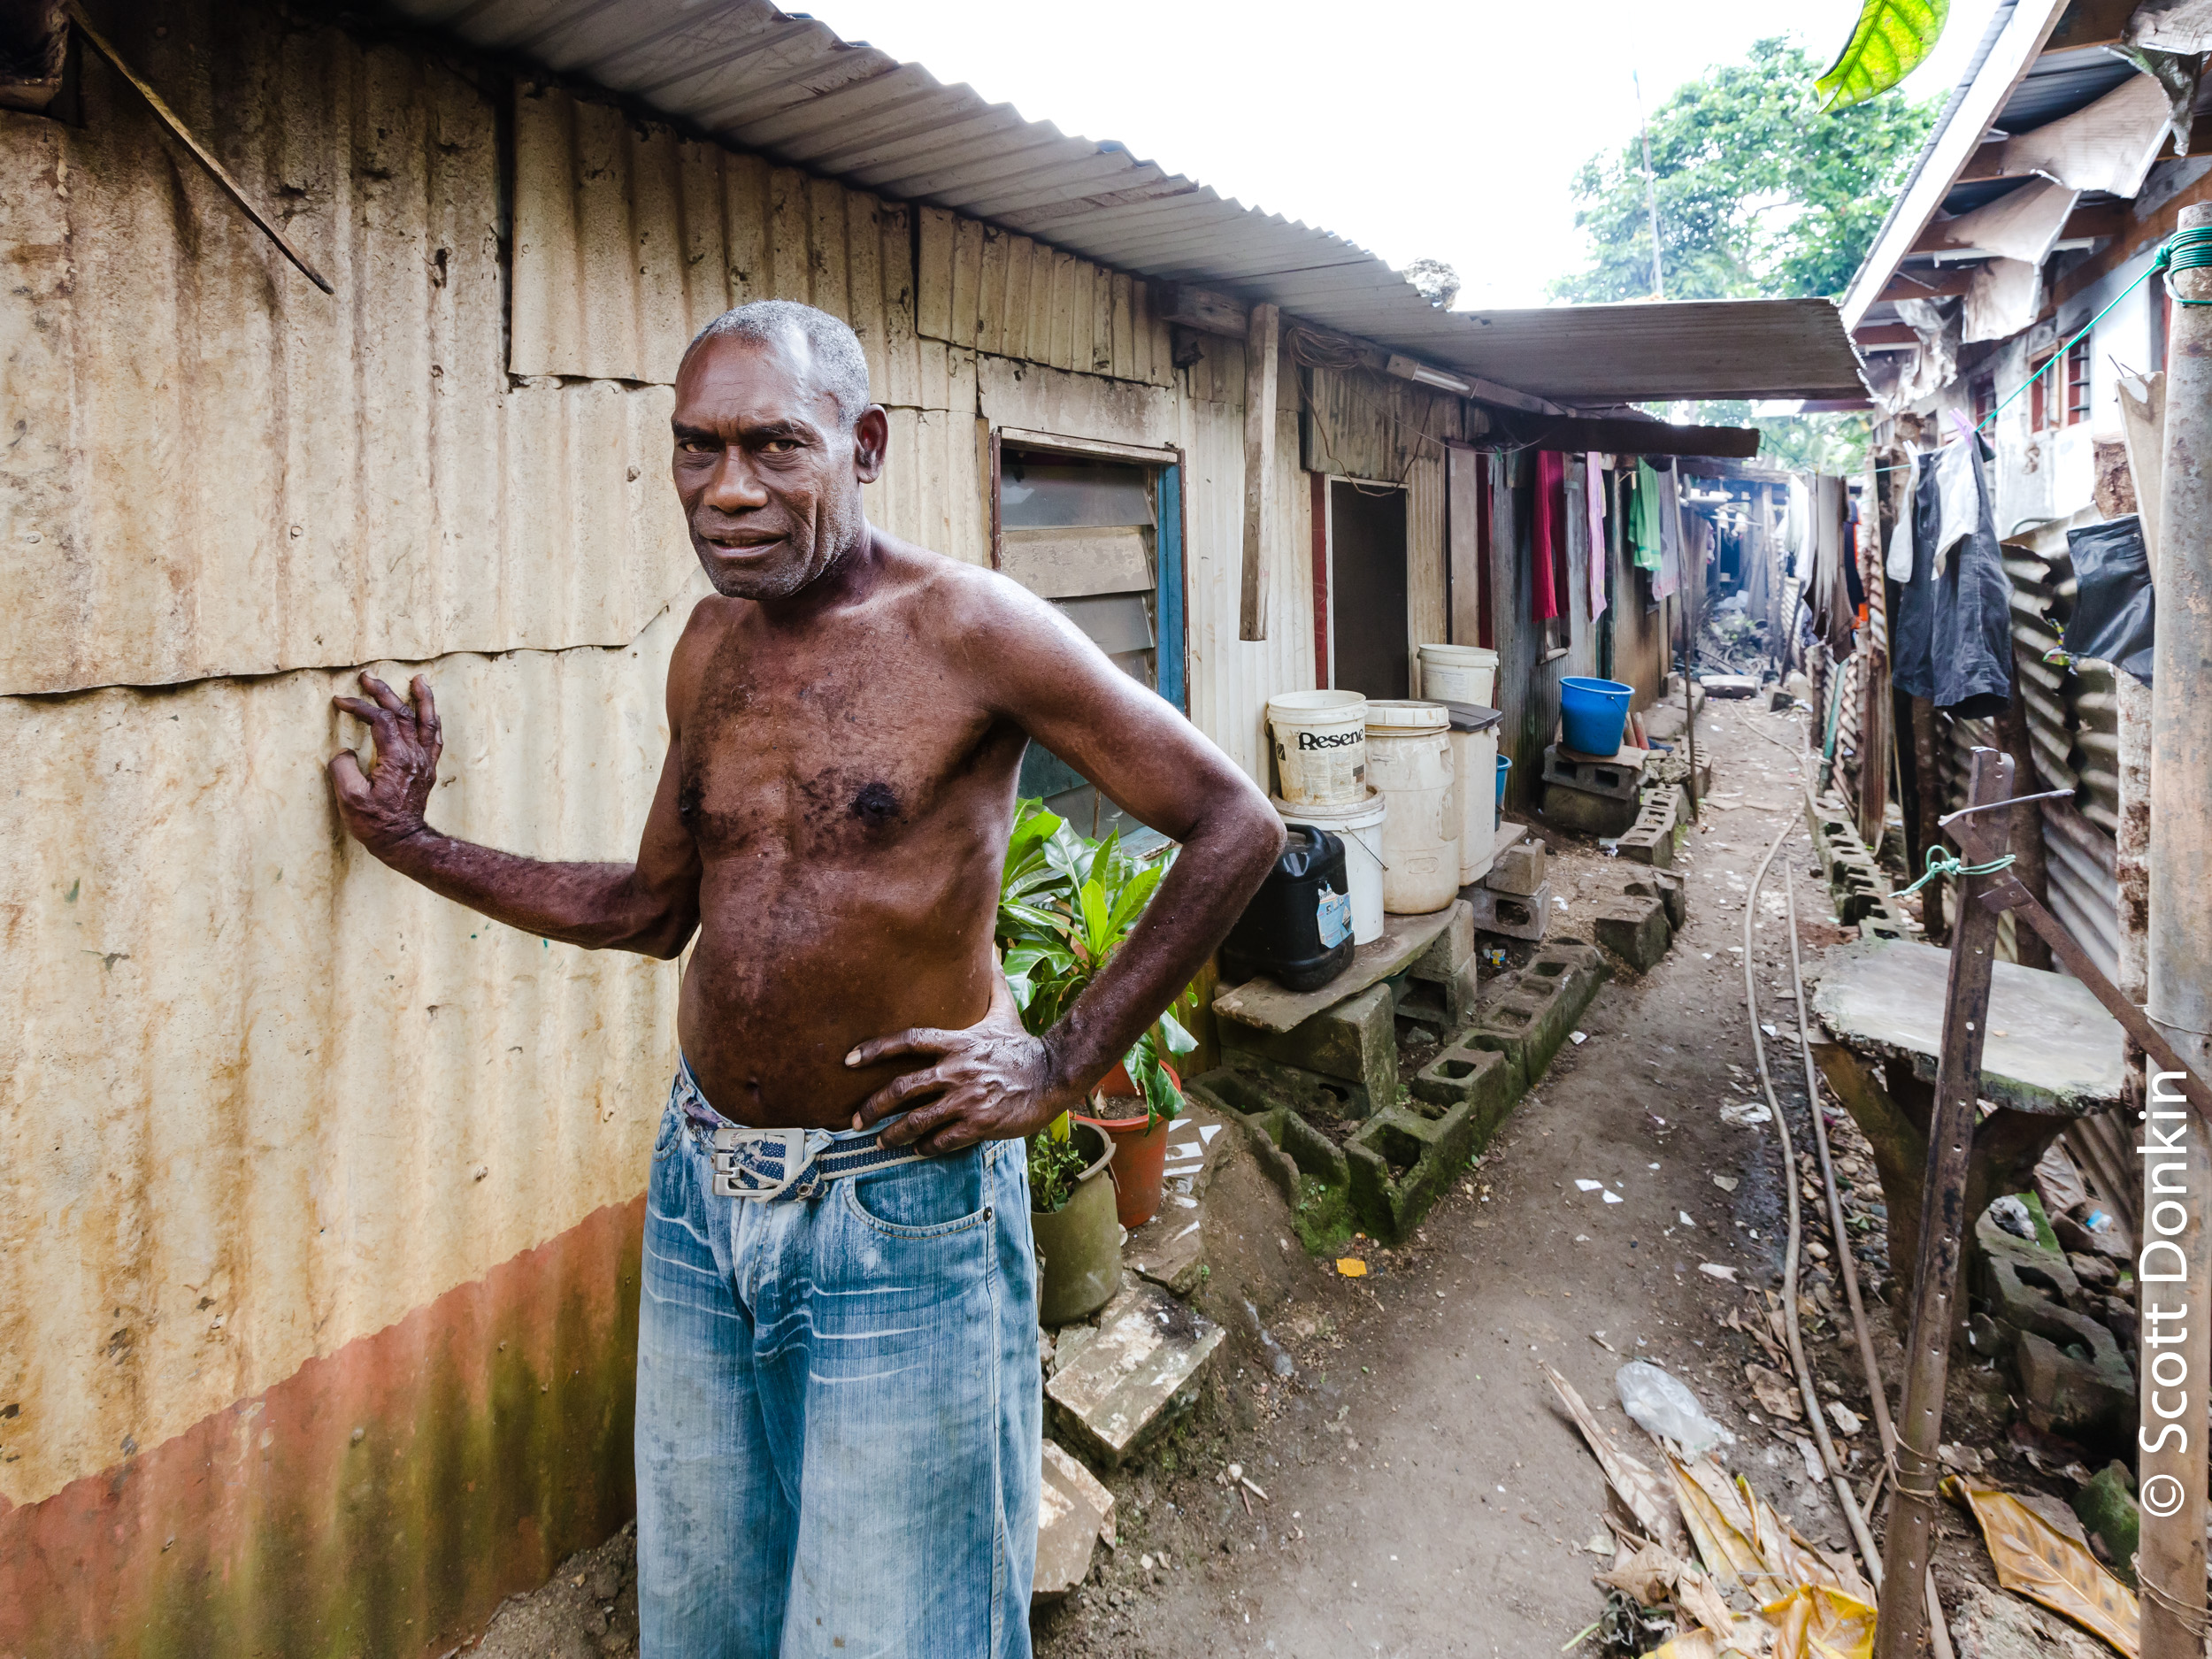 Man outside his home. Shanty town, Port Vila, Vanuatu.